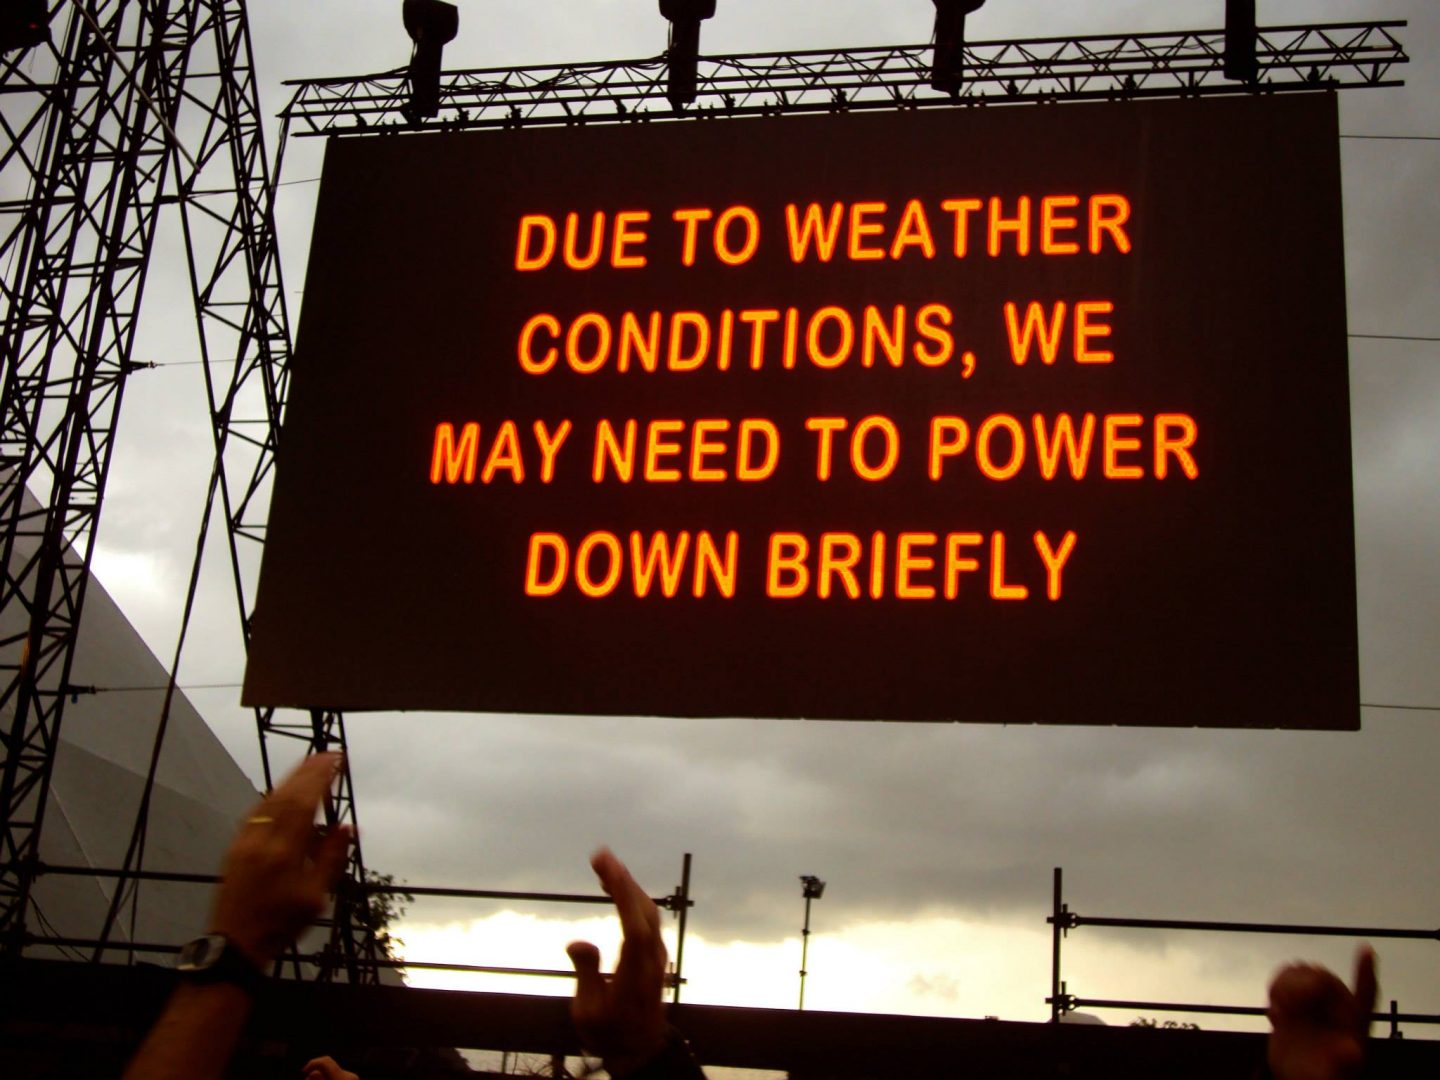 Stage powered down due to rain at Glastonbury